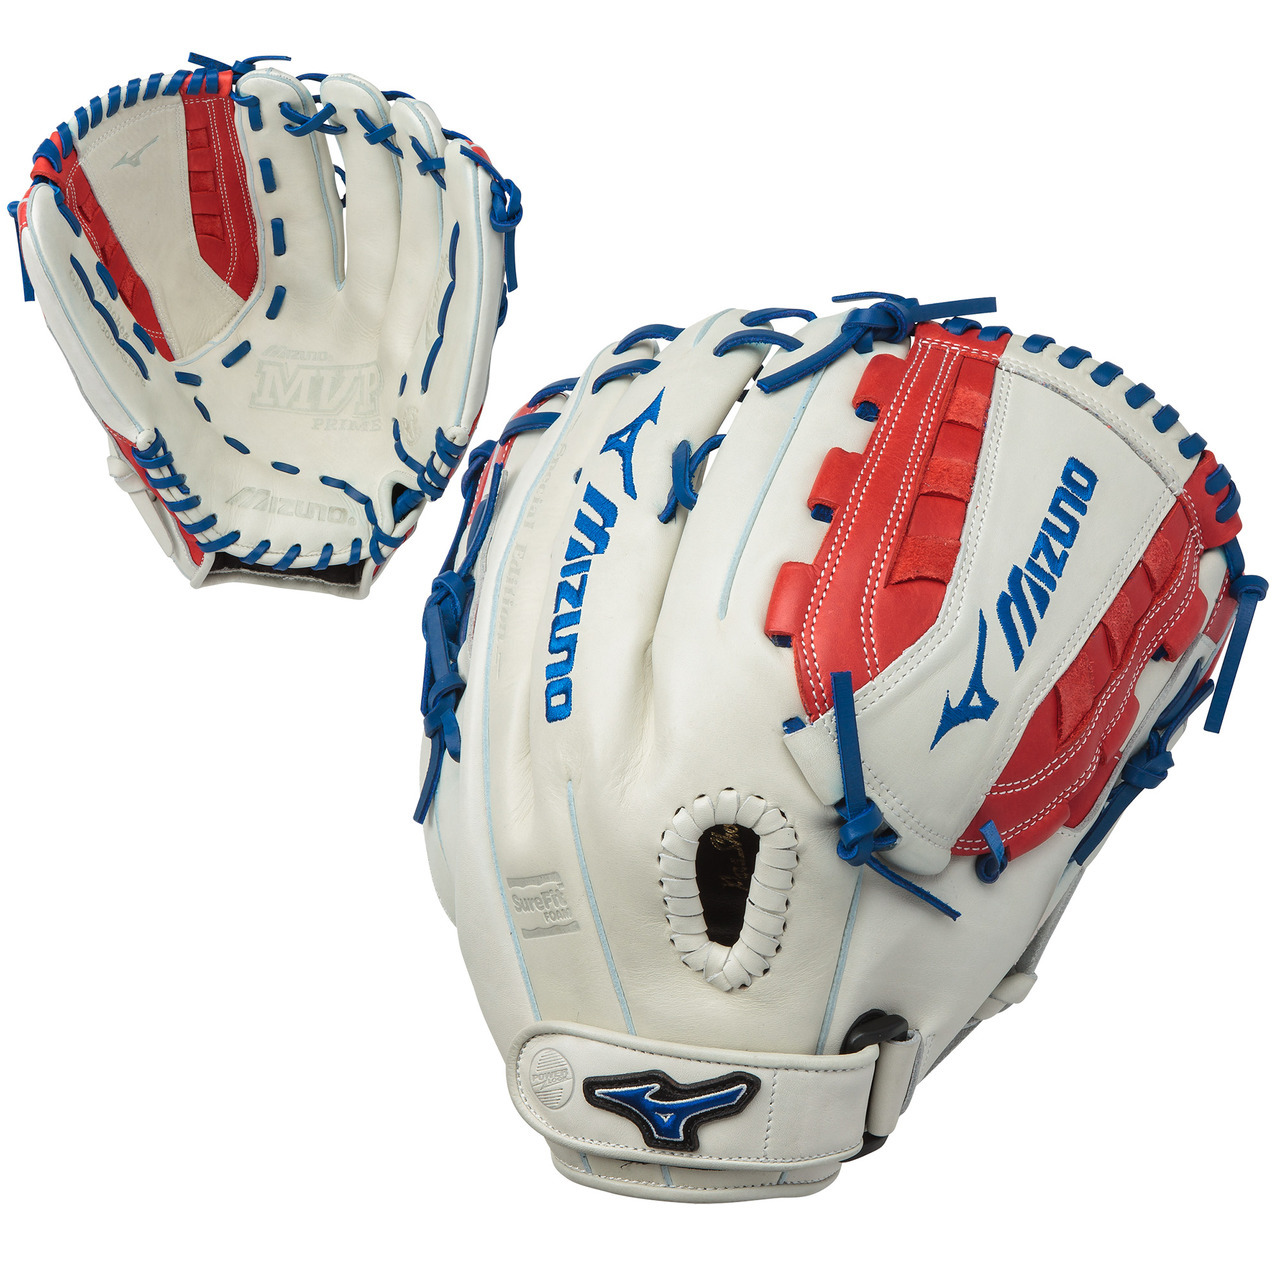 mizuno-mvp-prime-se-12-inch-gmvp1200psef5-fastpitch-softball-glove-right-hand-throw GMVP1200PSEF5-SIRDNY-RightHandThrow Mizuno 889961059650 The all new MVP Prime SE fastpitch softball series gloves feature